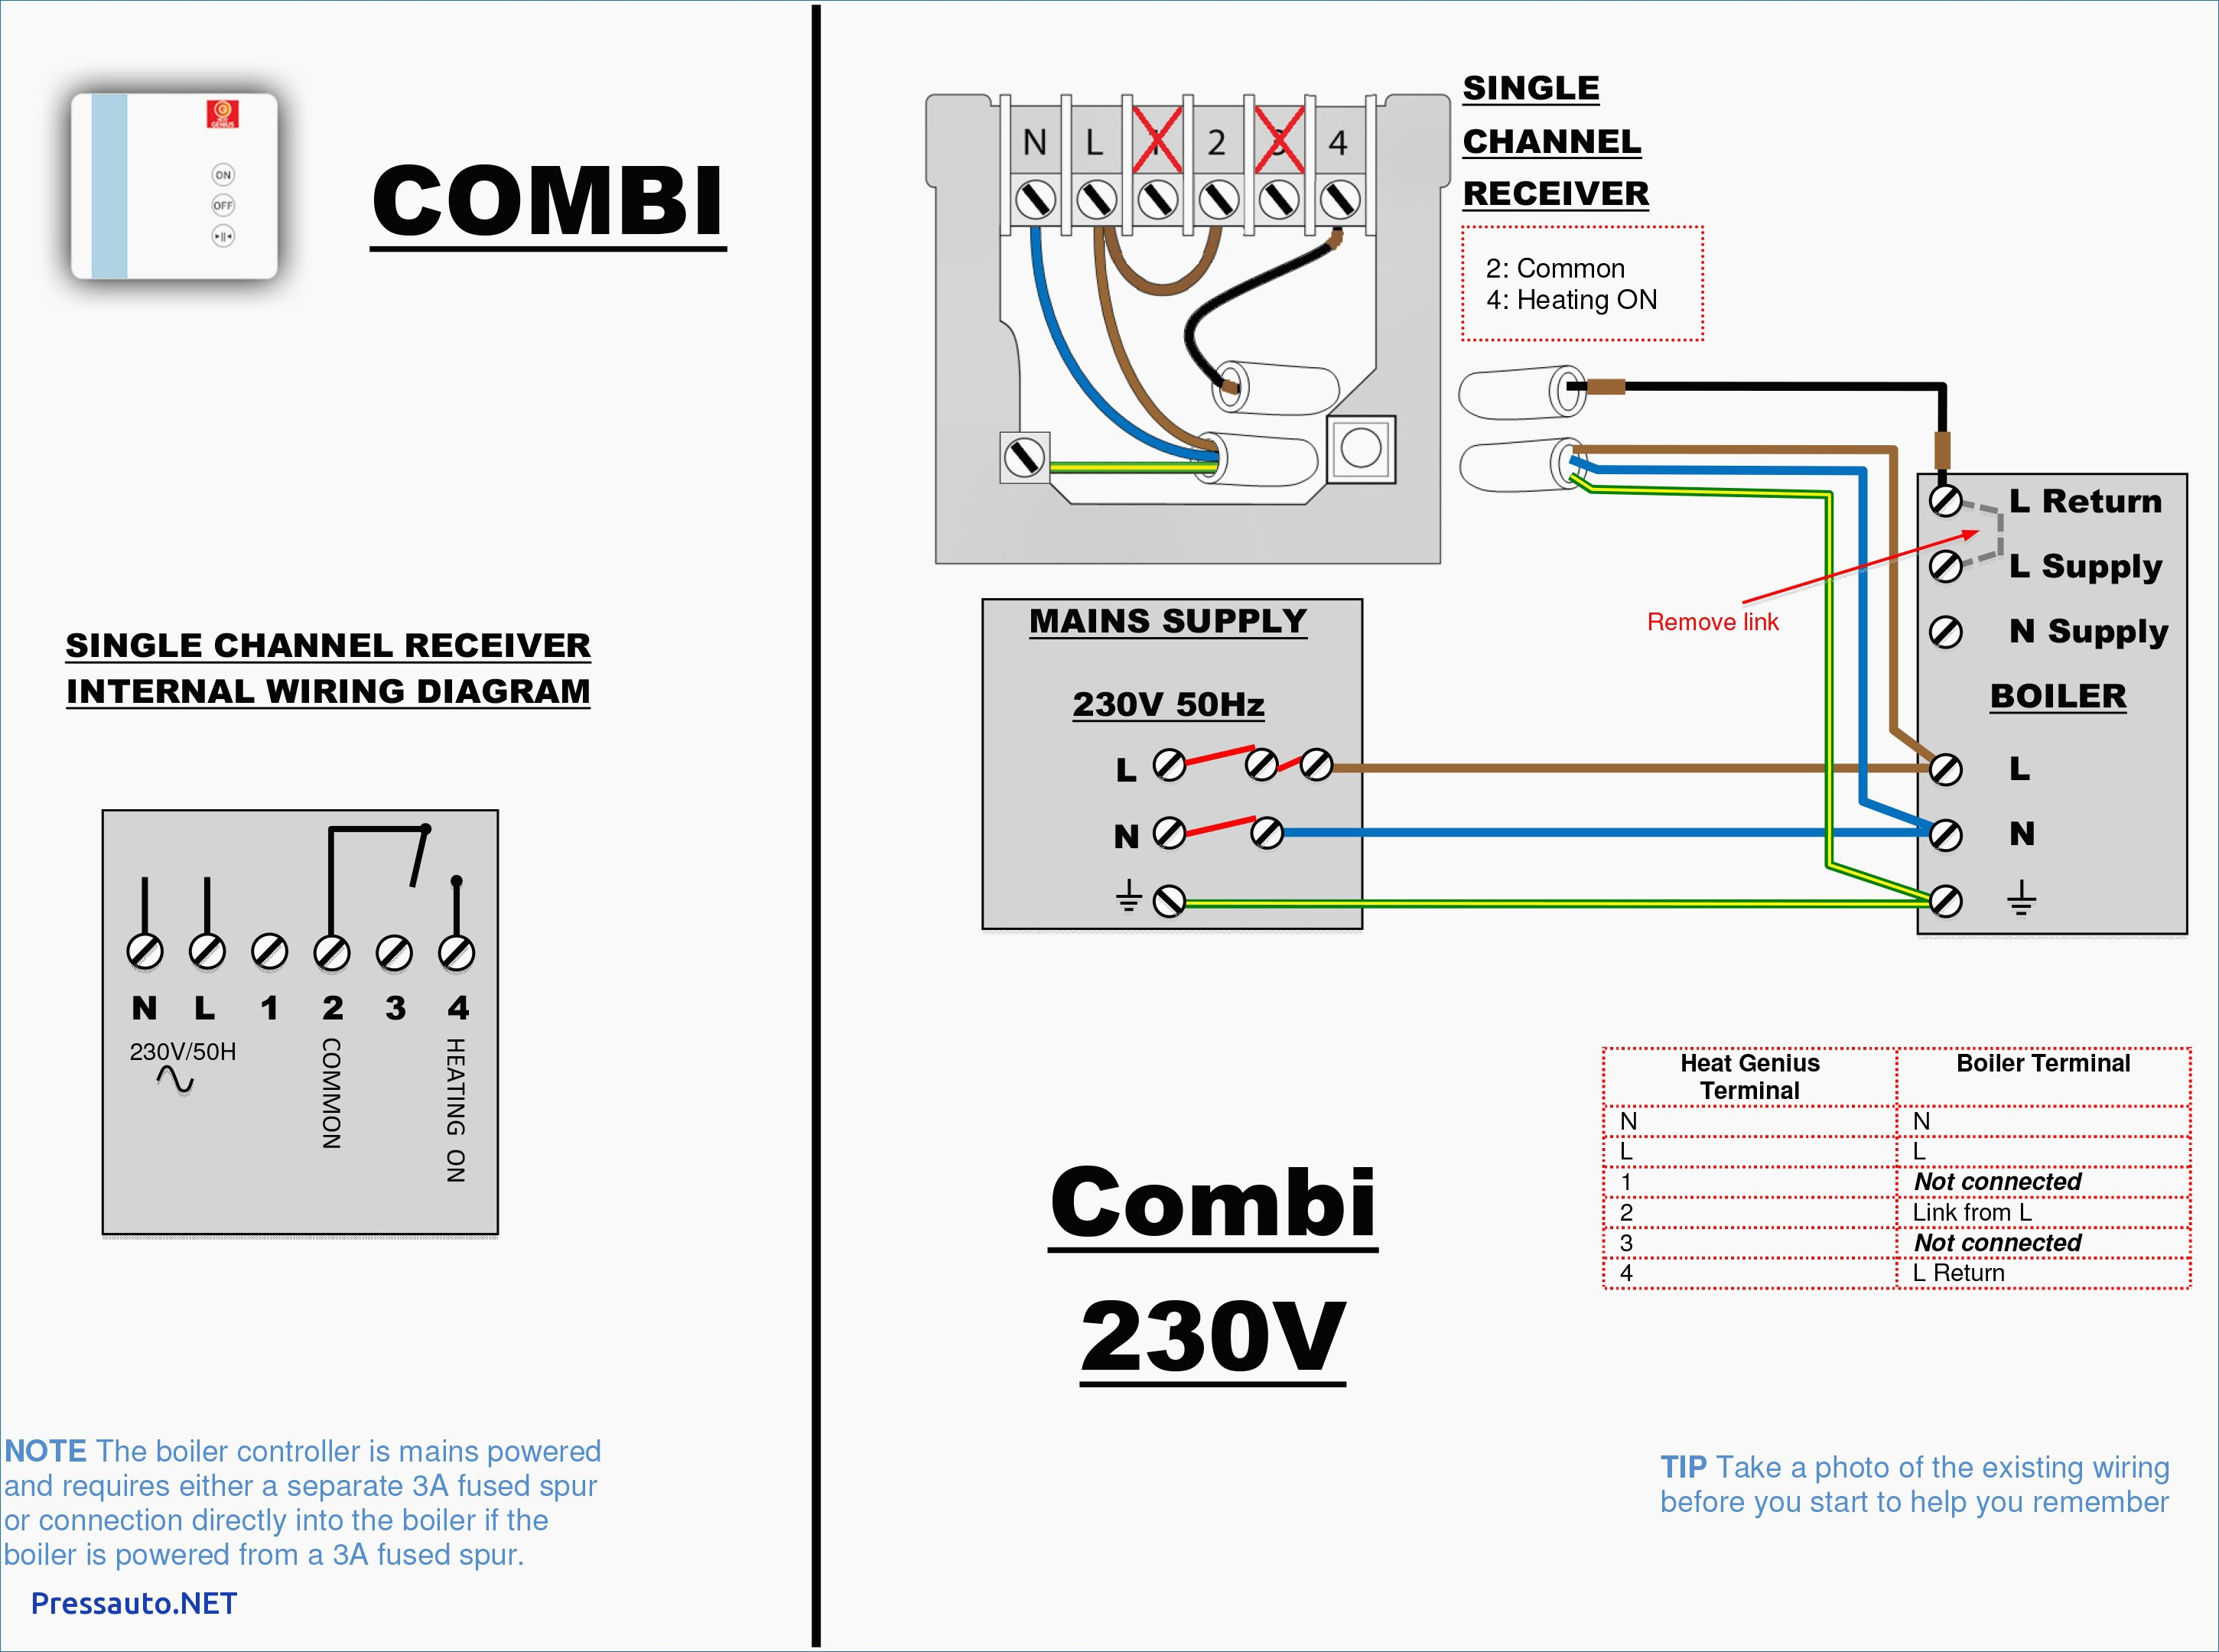 Boiler Wiring Diagram For Thermostat 2018 Wiring Diagram For Nest - Nest Diagram Wiring